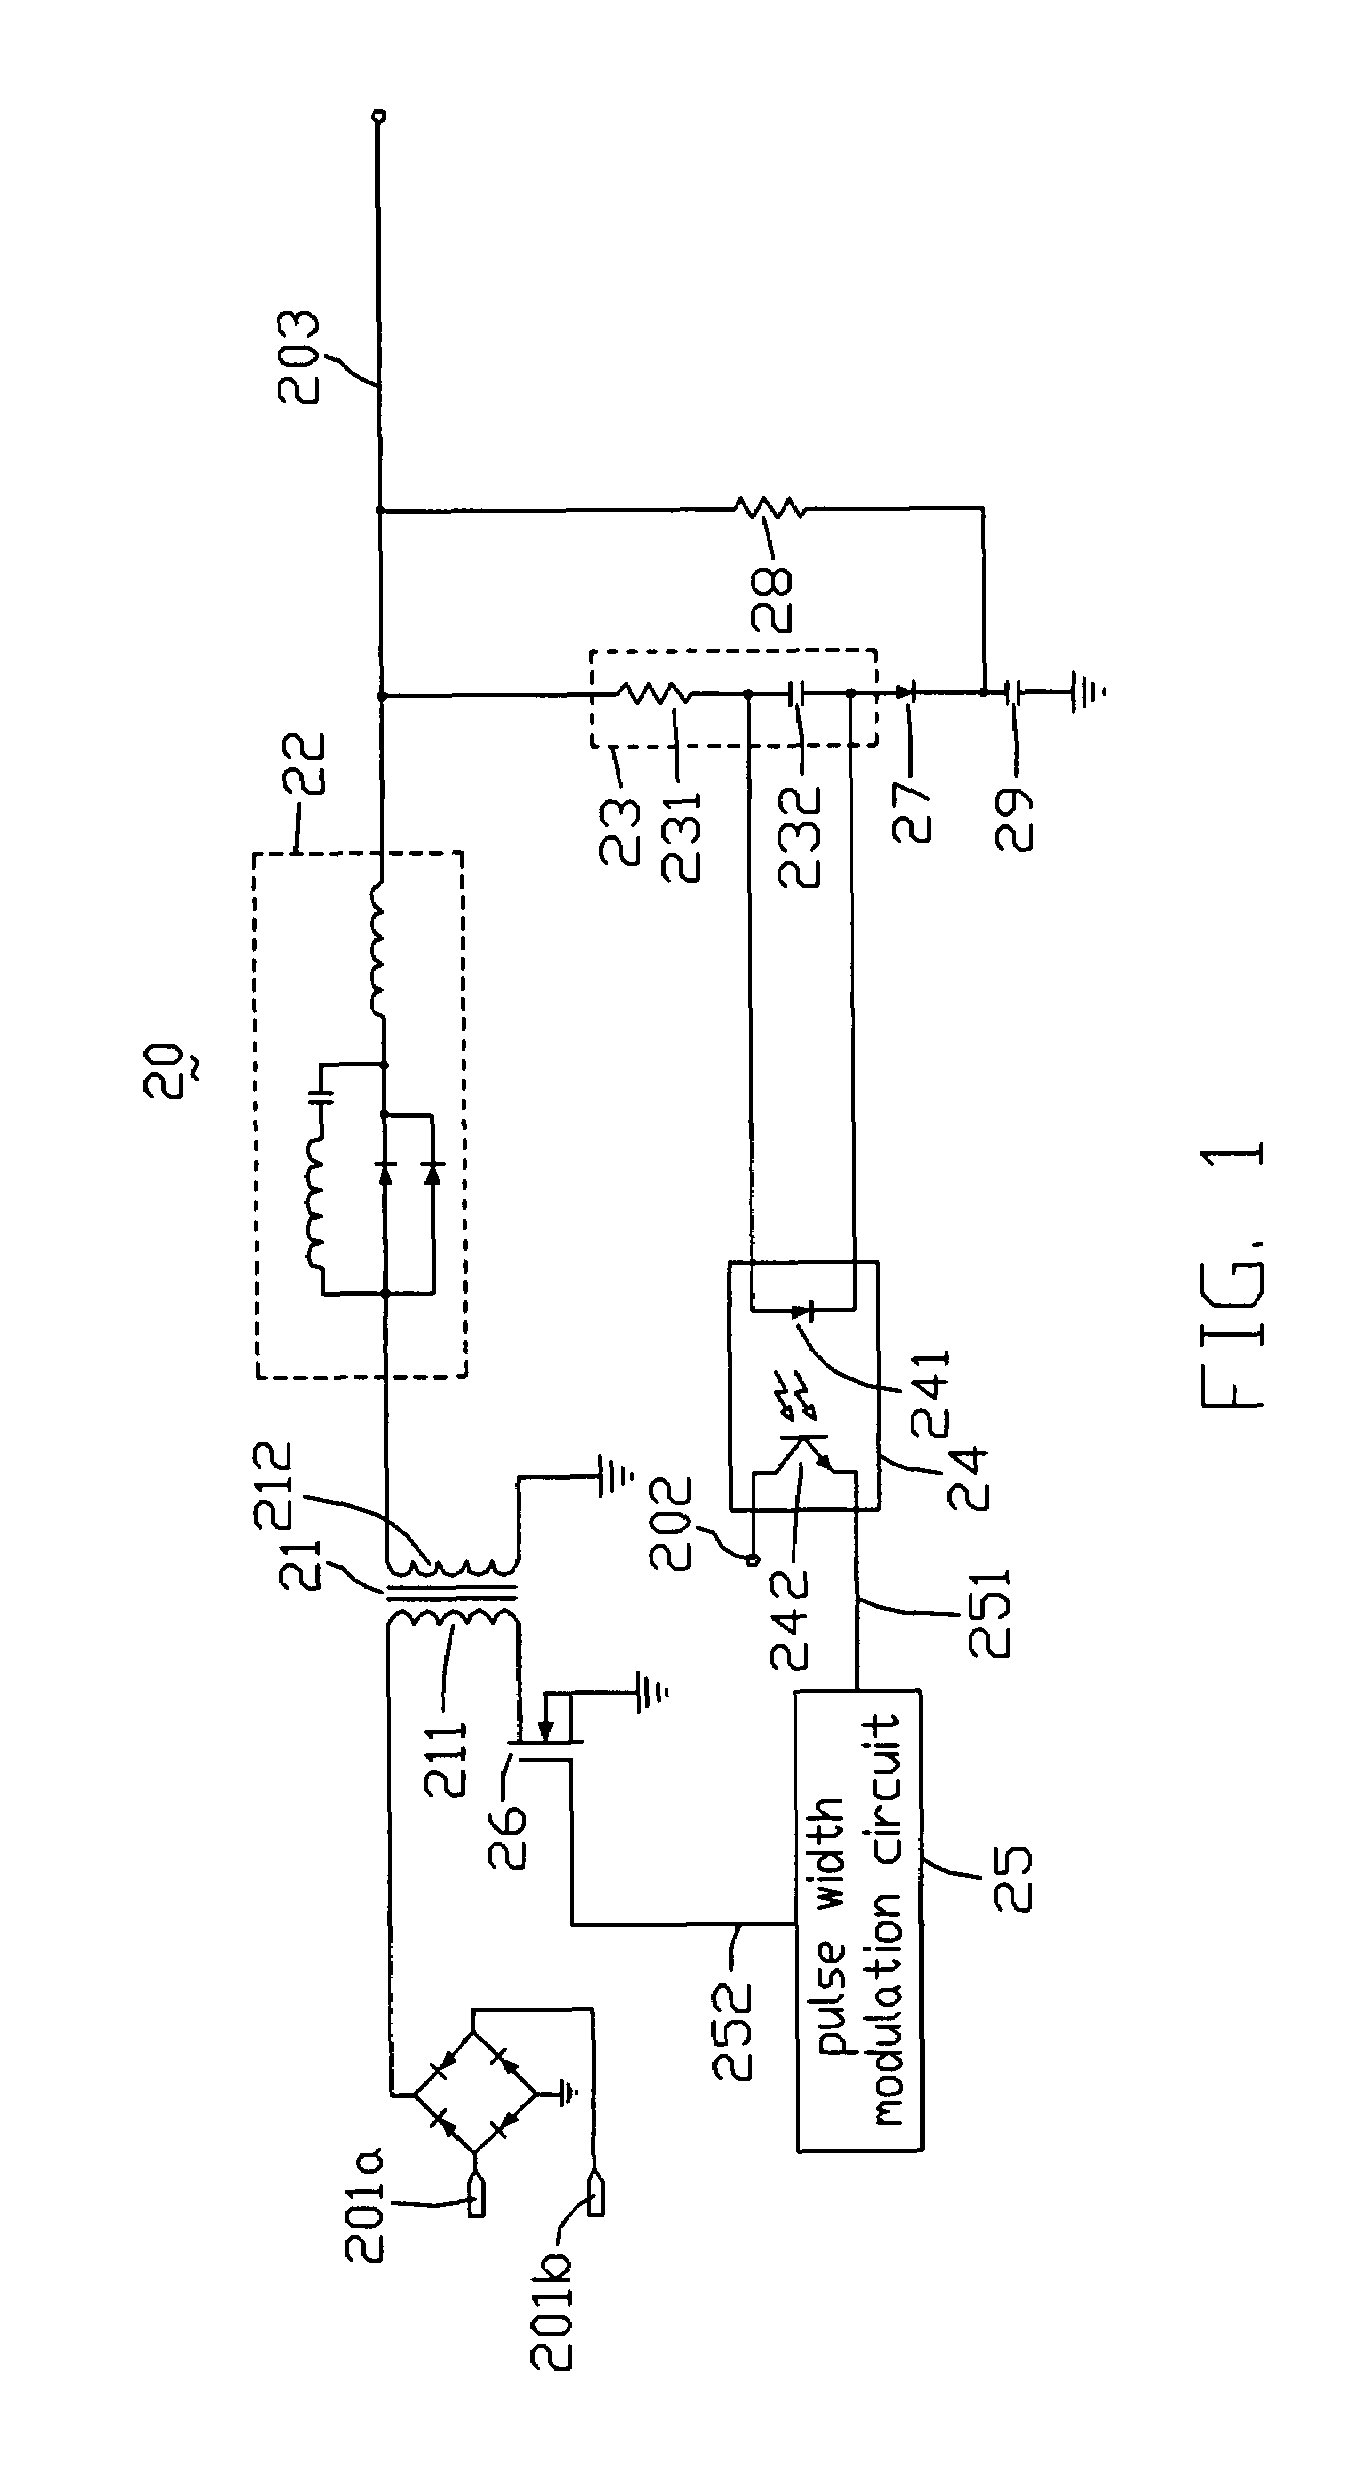 Patente Us7697307 Power Supply Circuit For Outputting Steady Pulse Width Modulator Patent Drawing